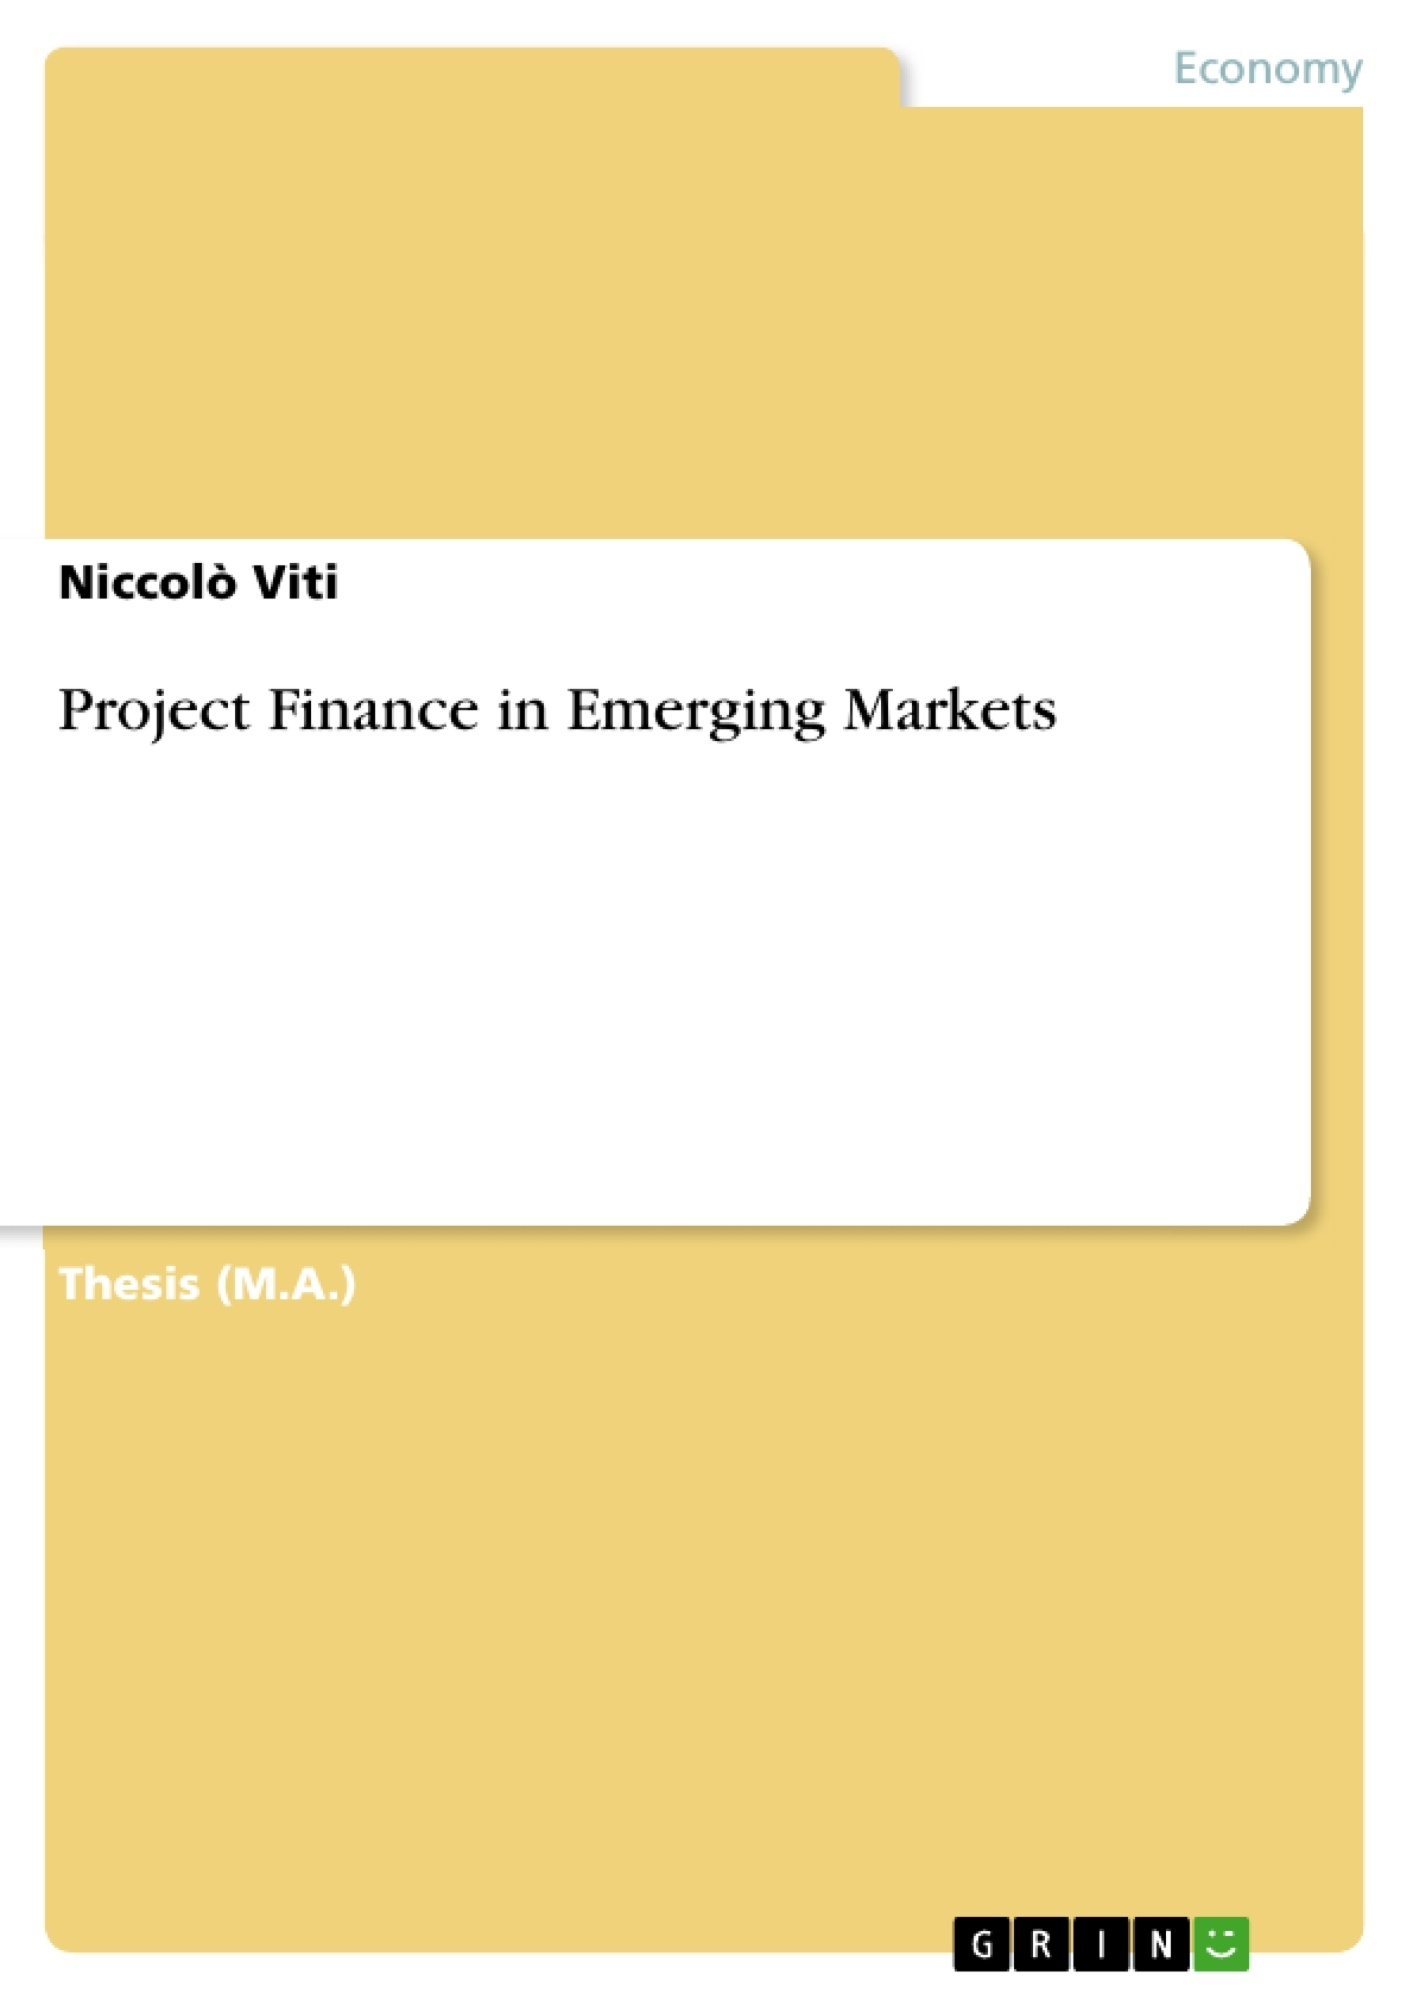 Title: Project Finance in Emerging Markets